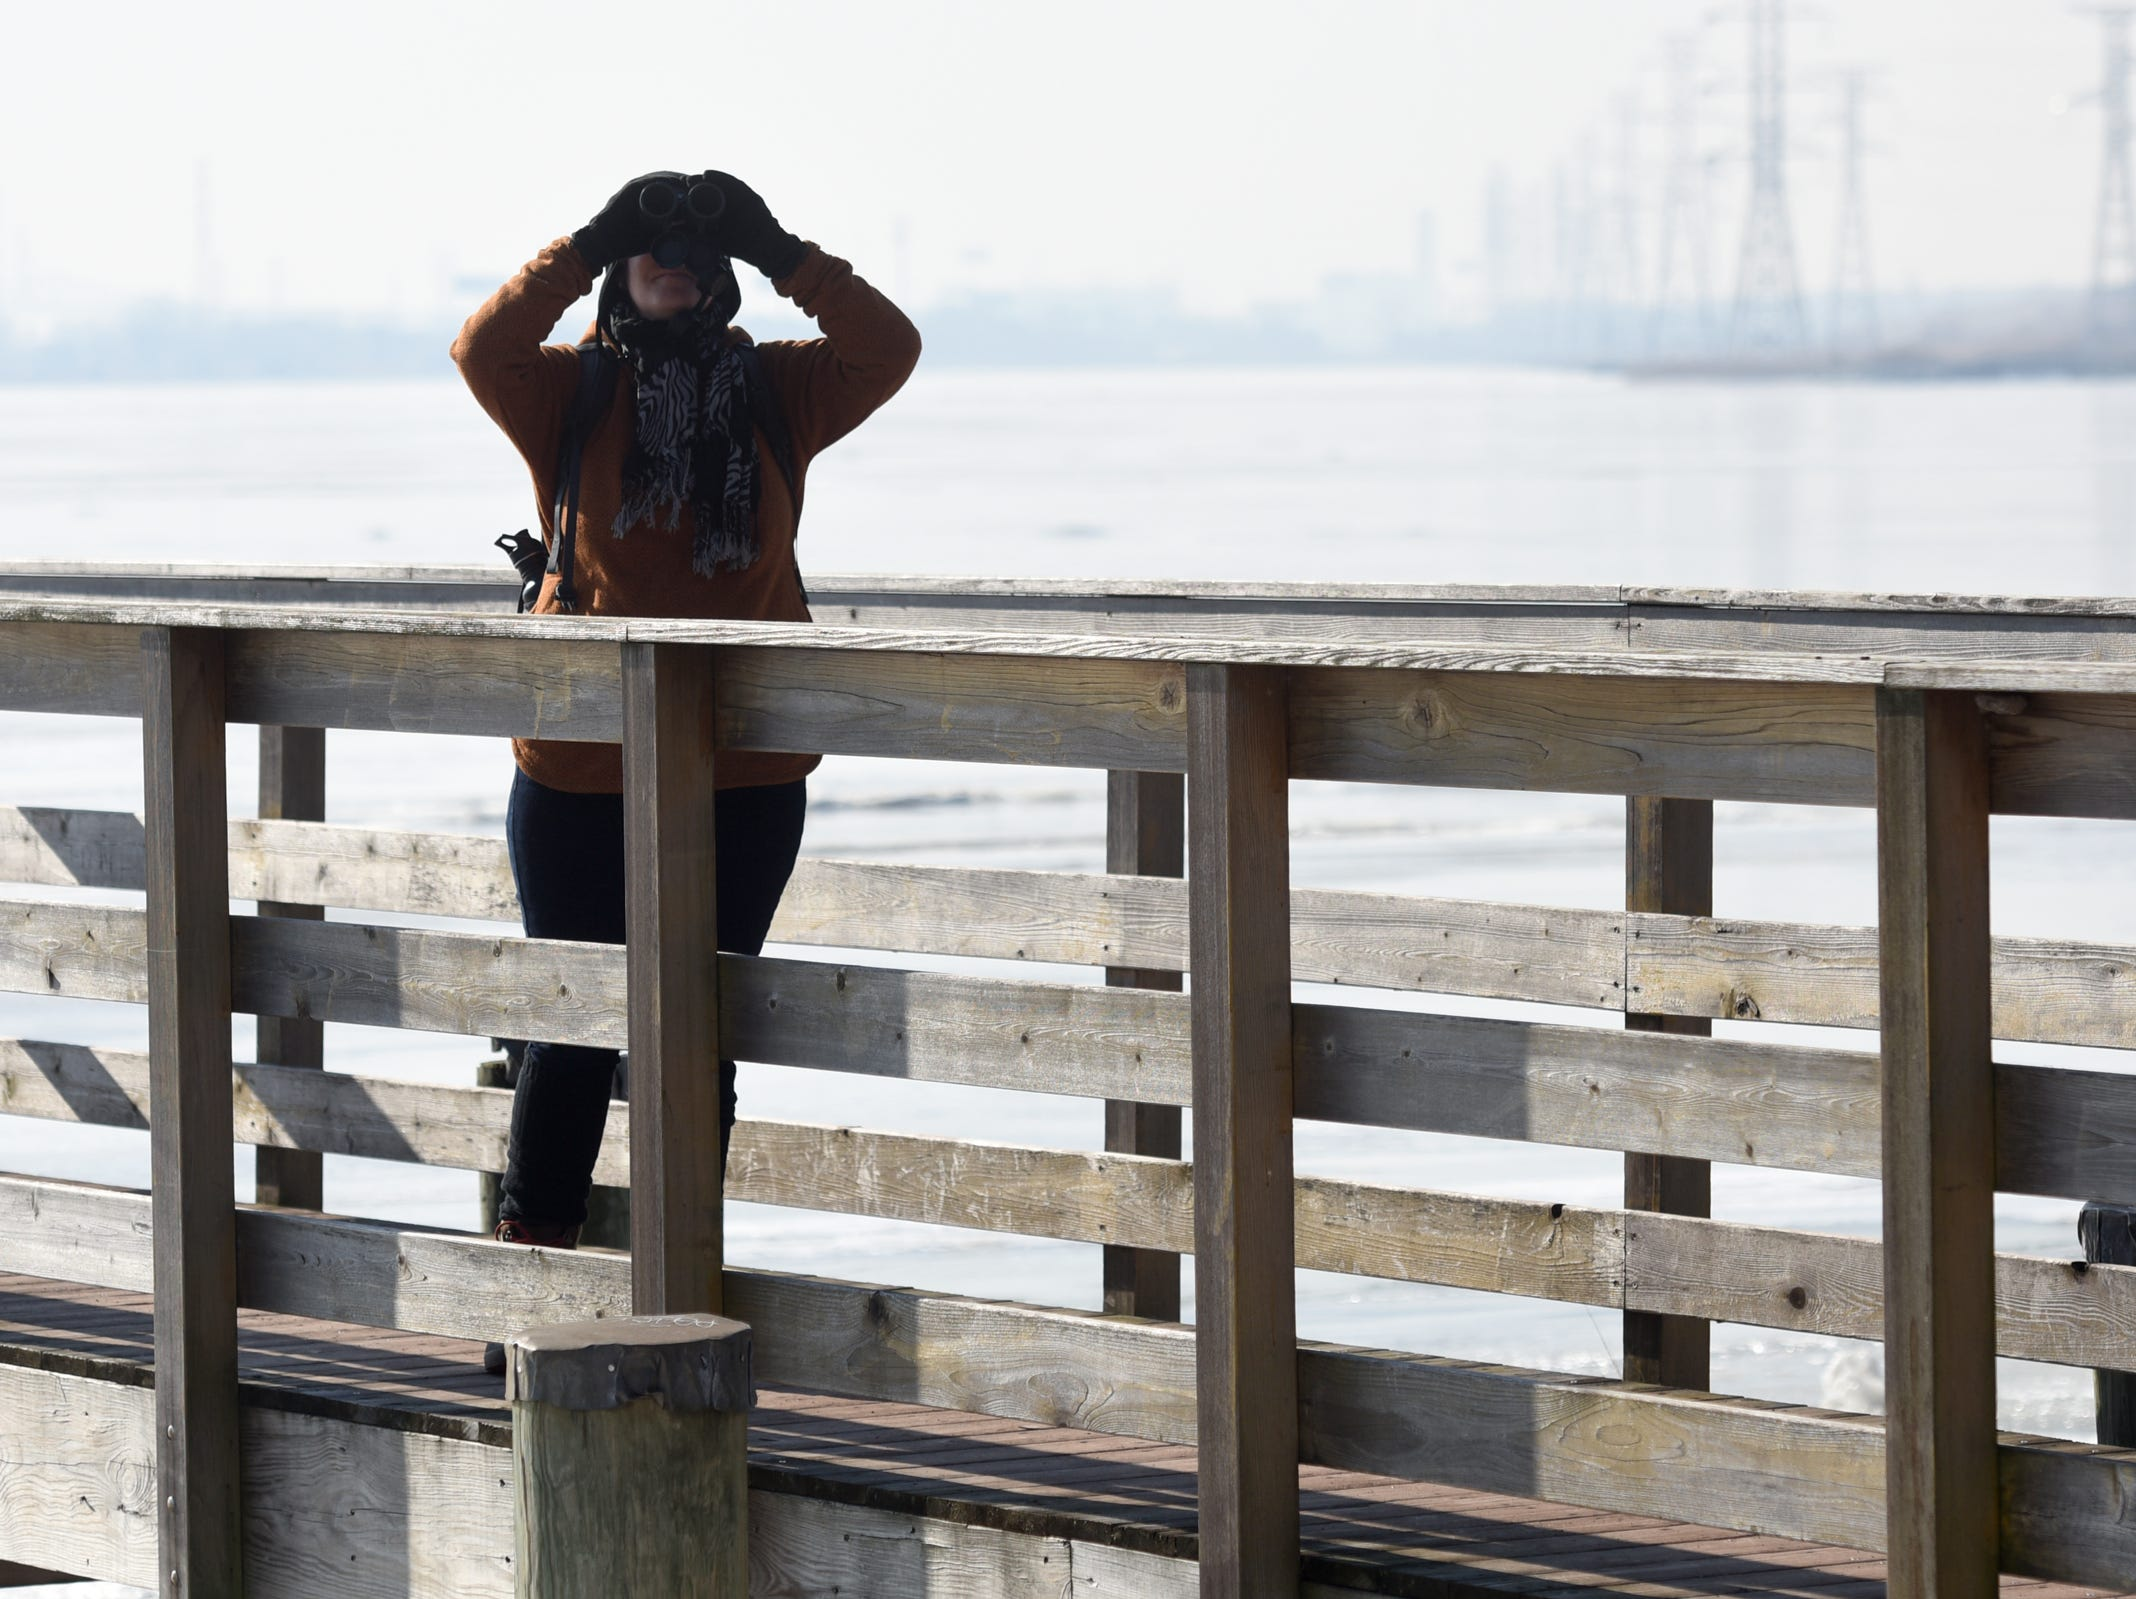 Martha Harbison of Brooklyn, NY watches a bird during the Bergen County Audubon Society wintering birds and nature walk at Dekorte Park in Lyndhurst on Sunday, February 3, 2019.